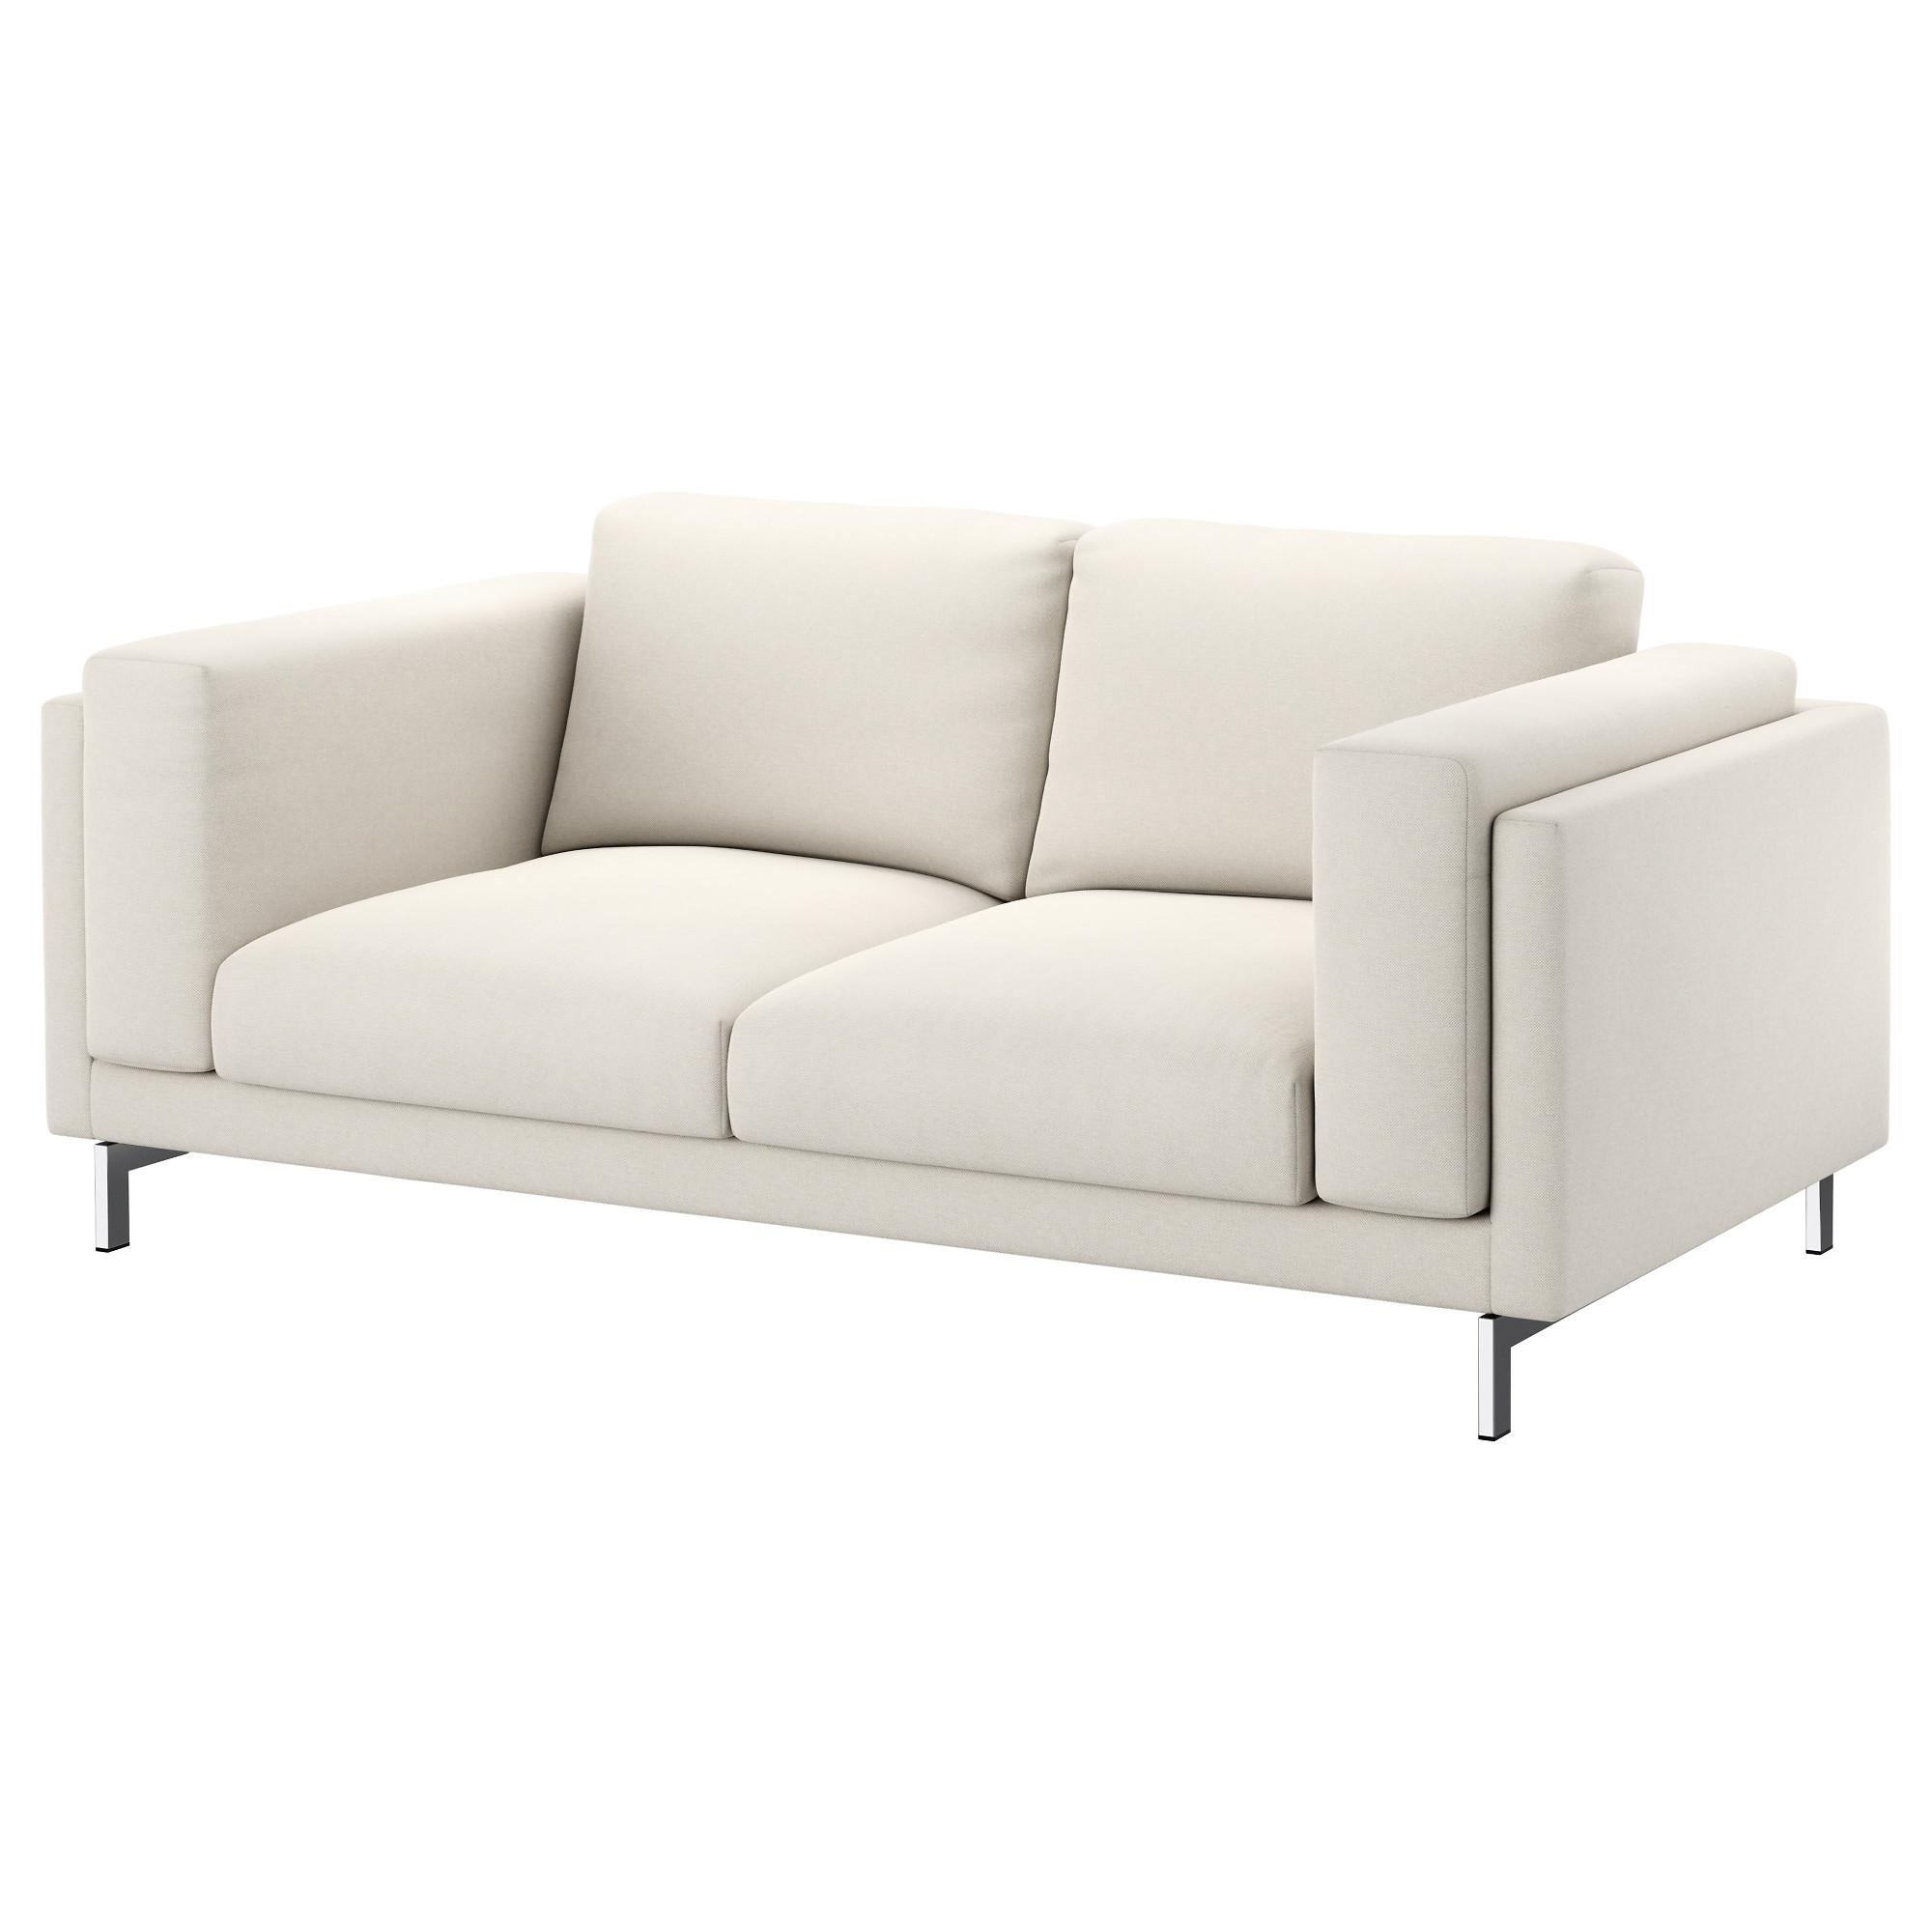 Ikea Textiles 20 43 Choices Of Ikea Two Seater Sofas Sofa Ideas